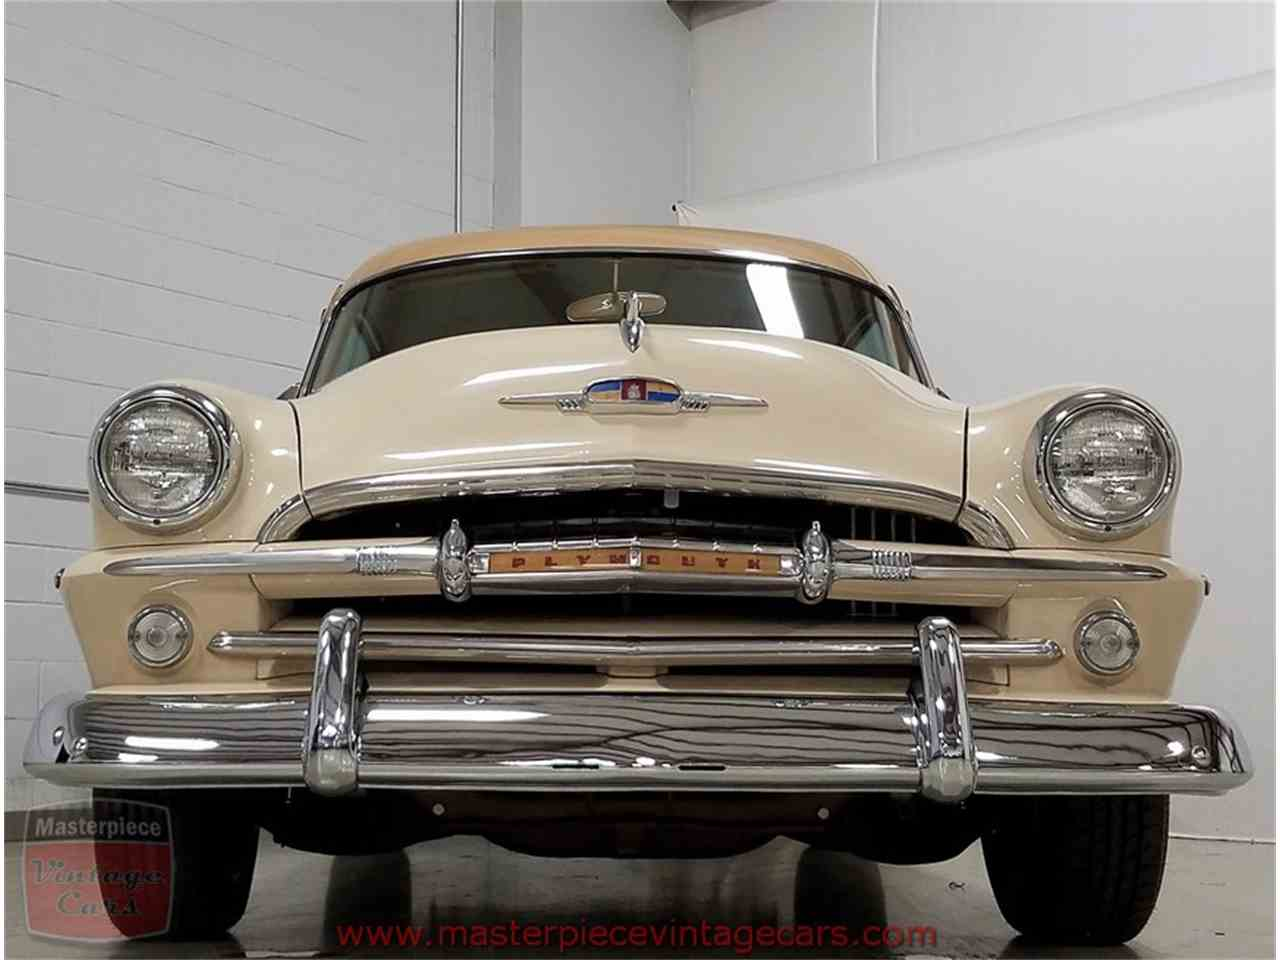 Large Picture of '54 Plaza Suburban located in Indiana Offered by Masterpiece Vintage Cars - KV49